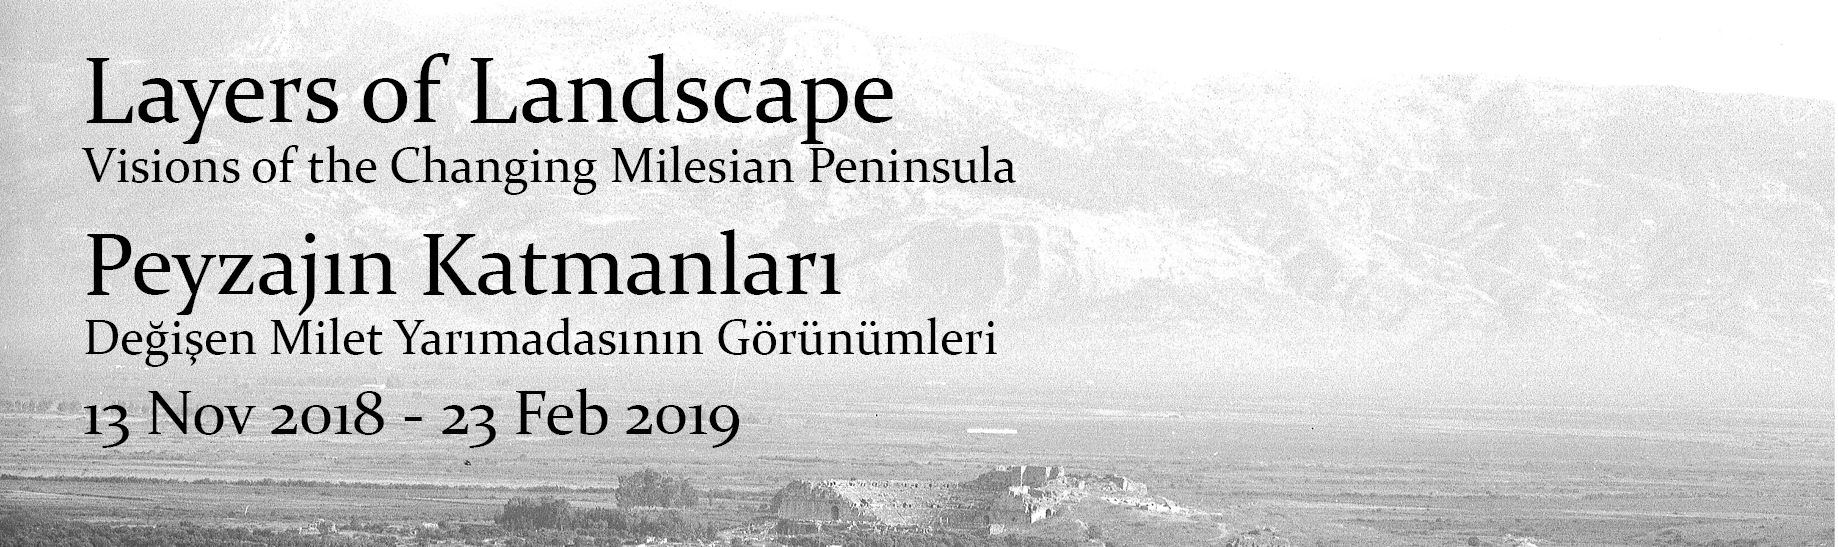 Layers of Landscape, Visions of the Changing Milesian Peninsula